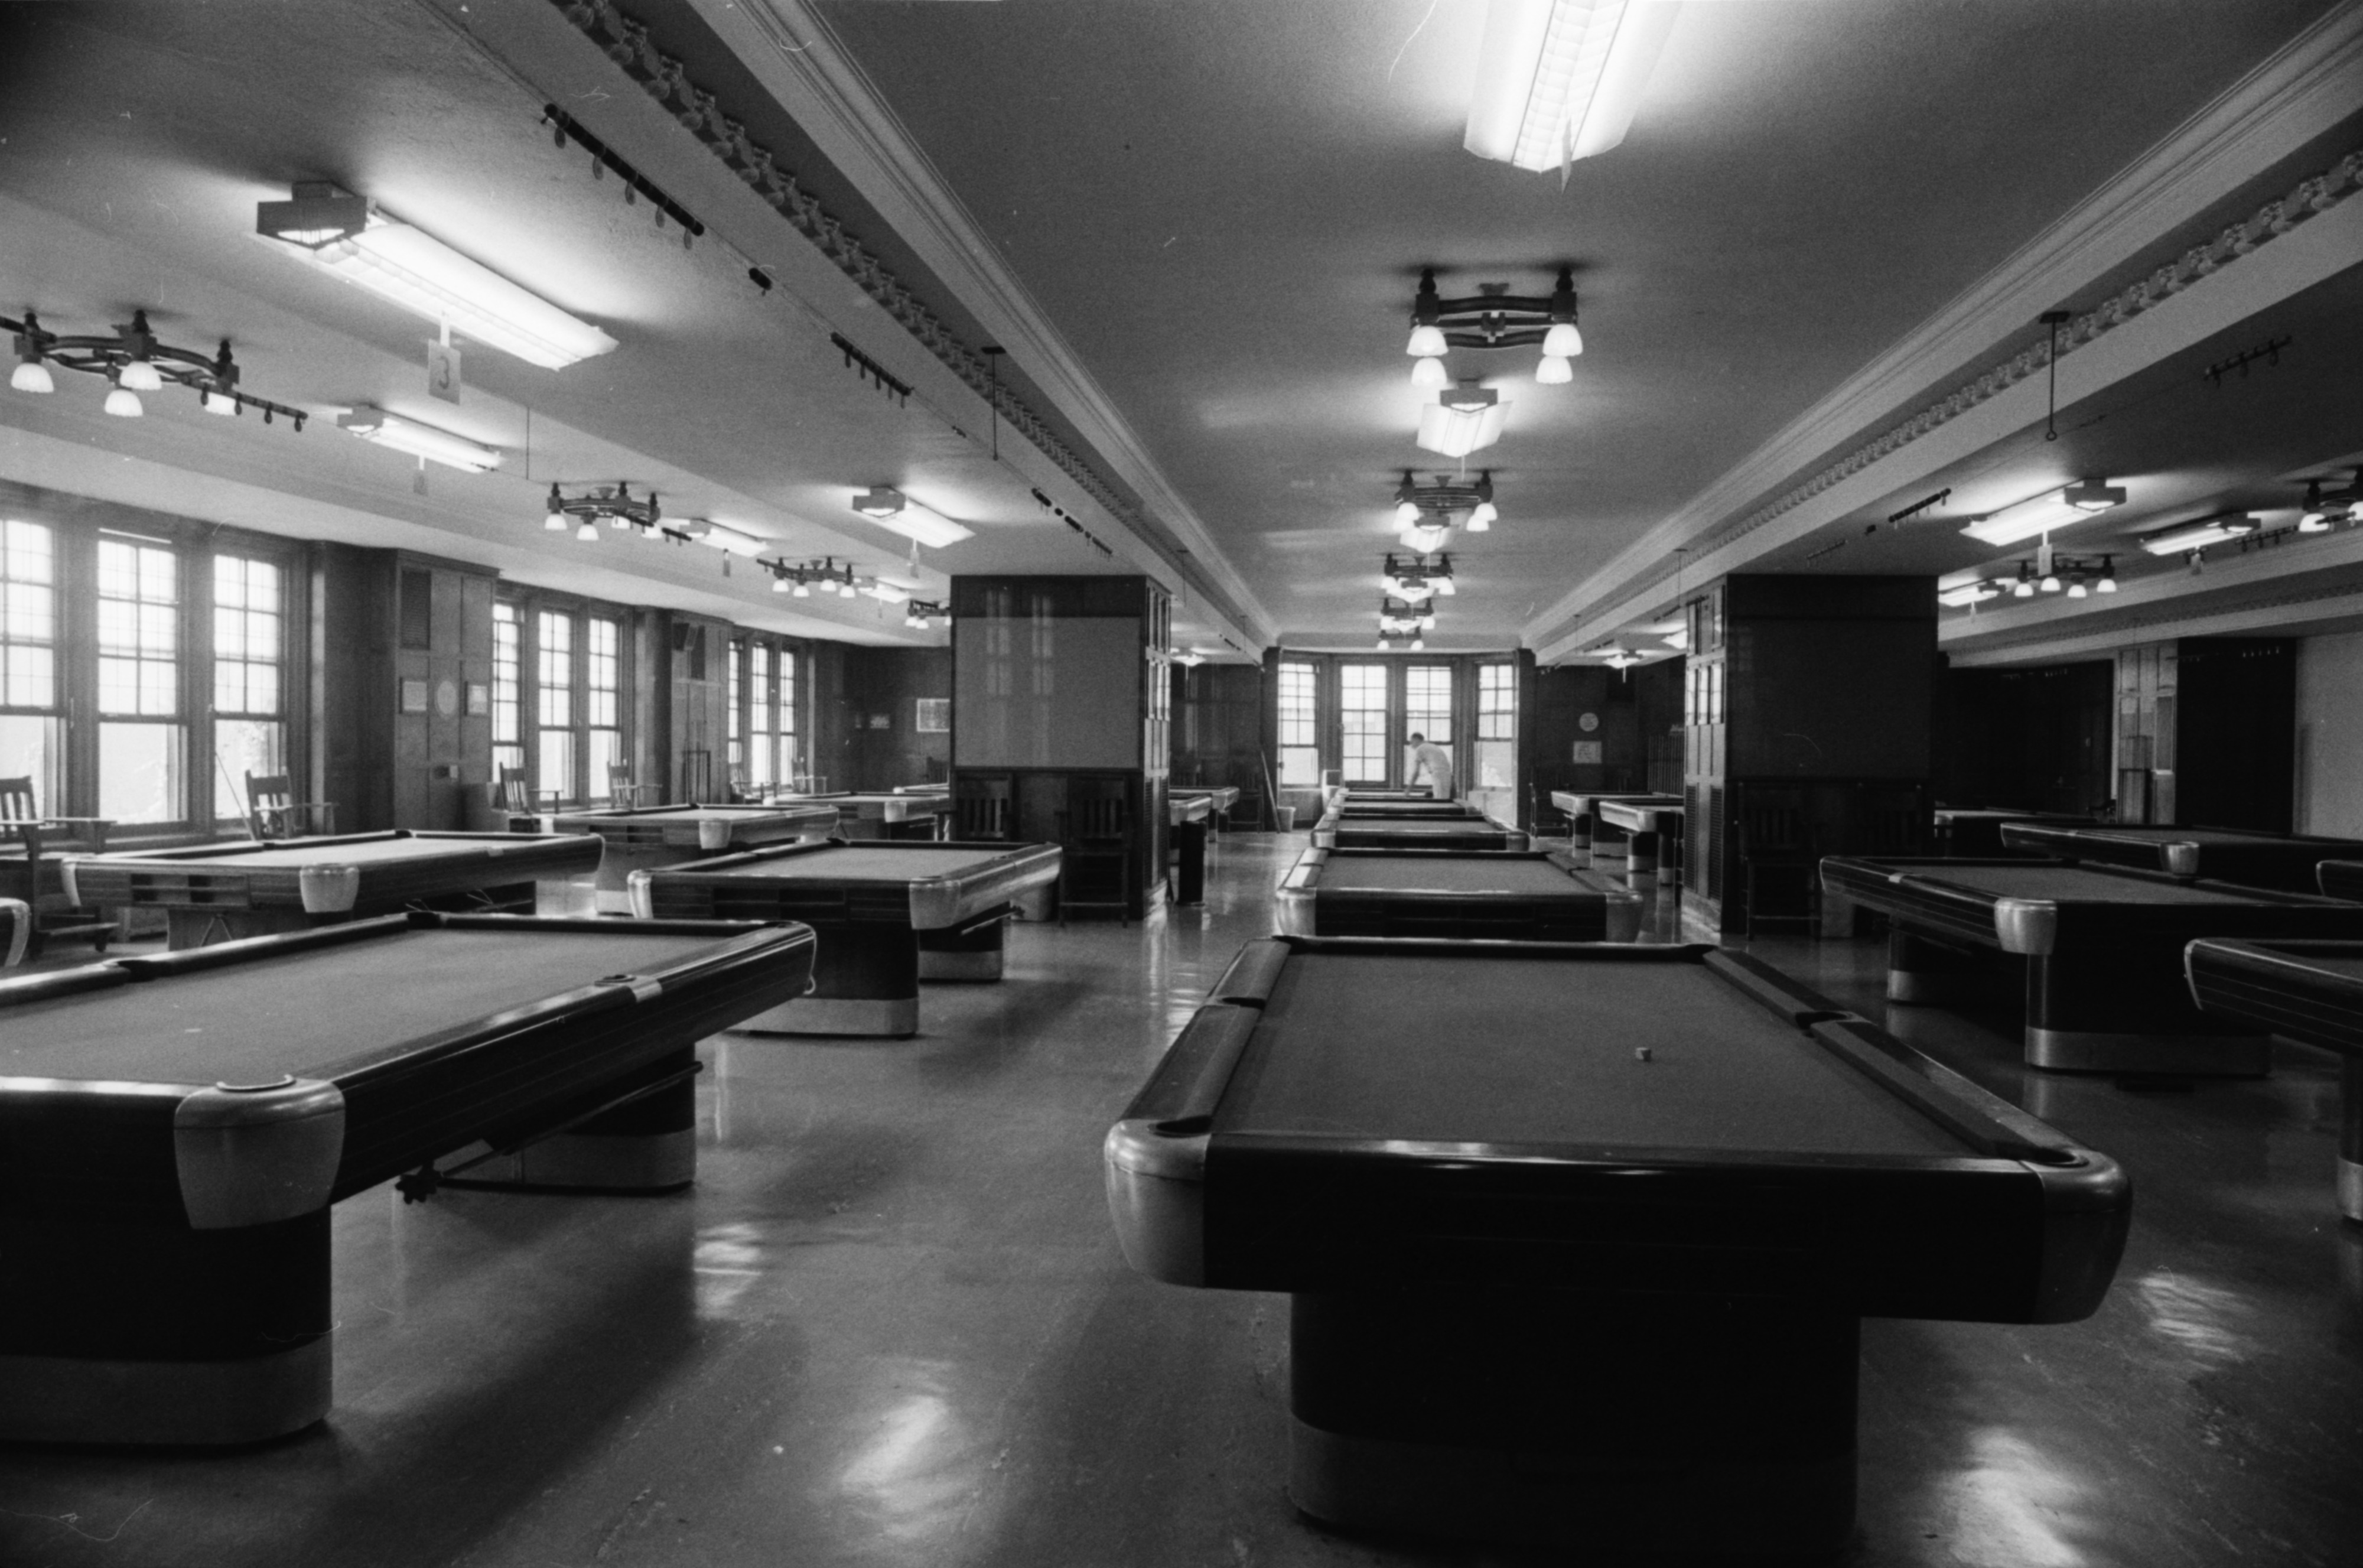 Michigan Union, Interior, Billiards Tables, August 1976 Image